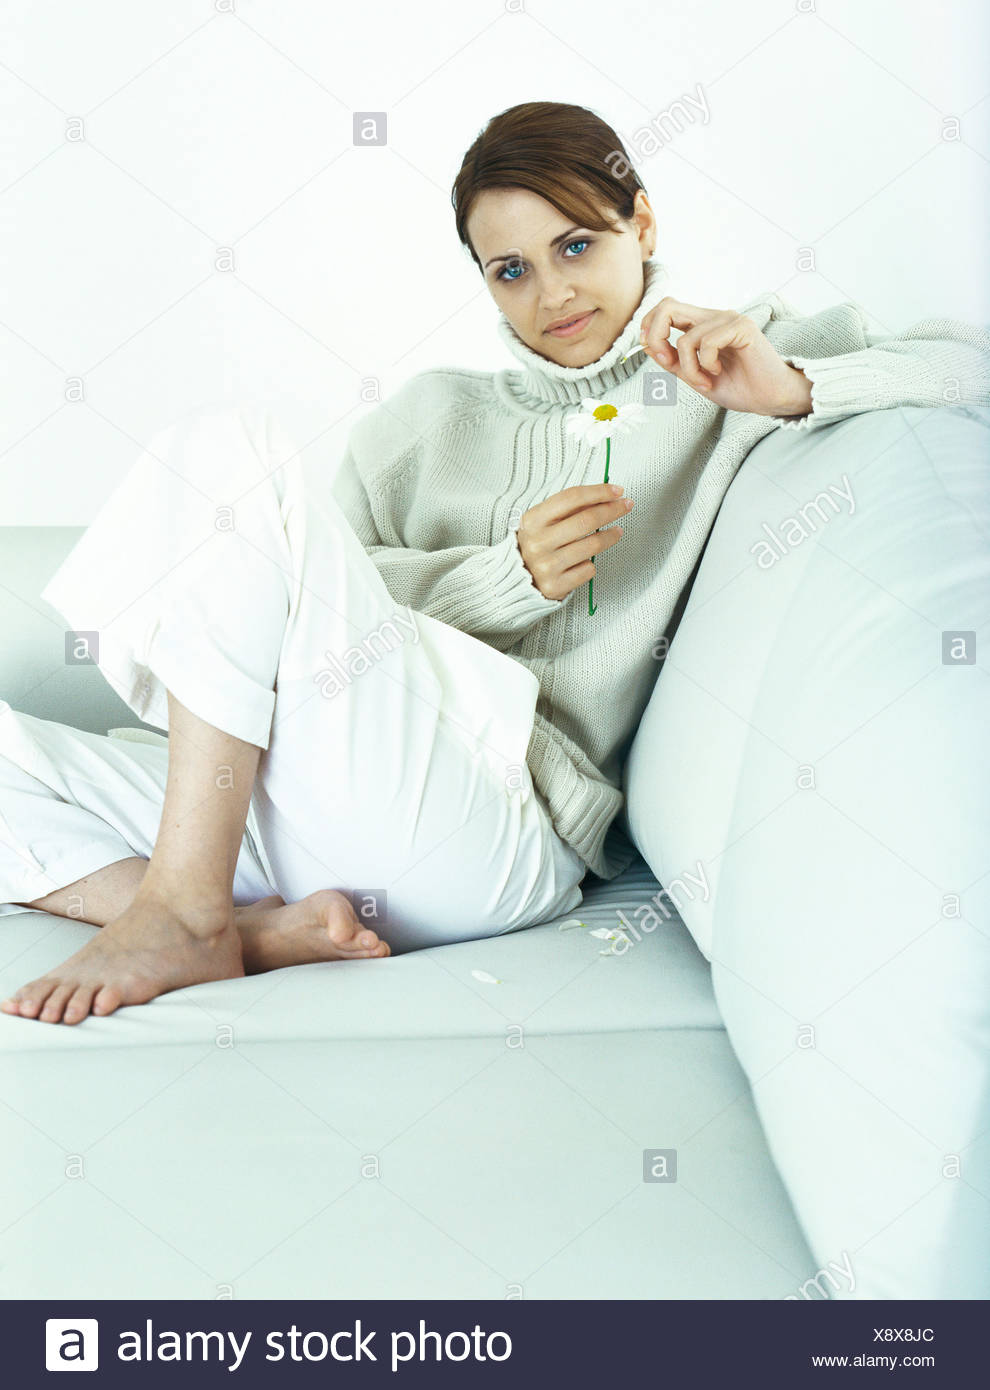 Woman sitting with knee up on sofa, plucking petals from daisy - Stock Image